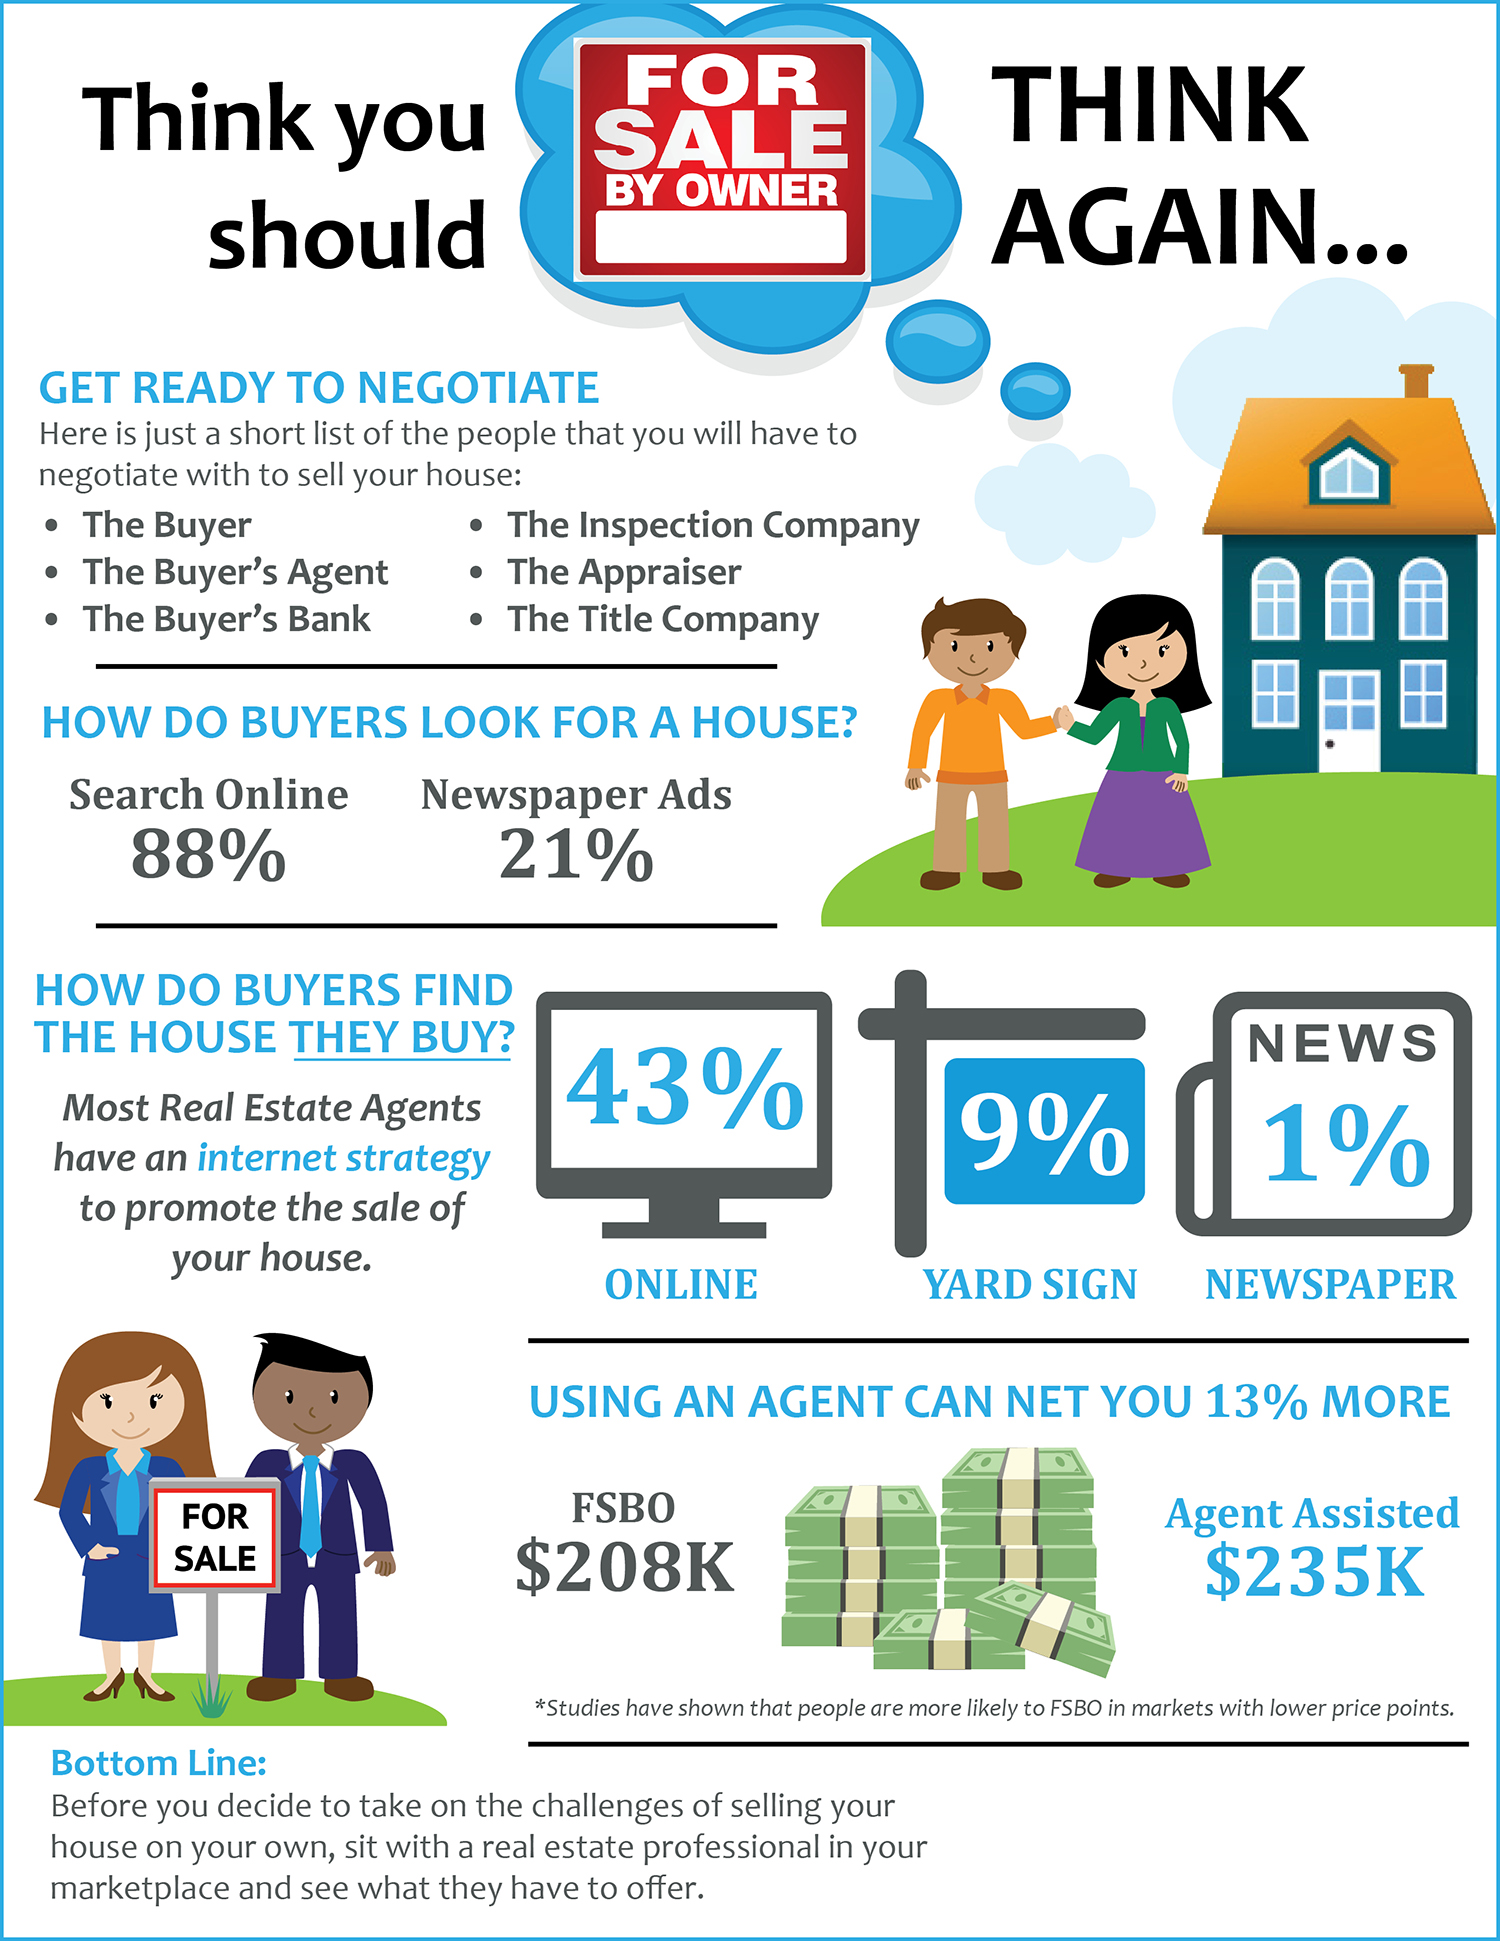 Think You Should FSBO